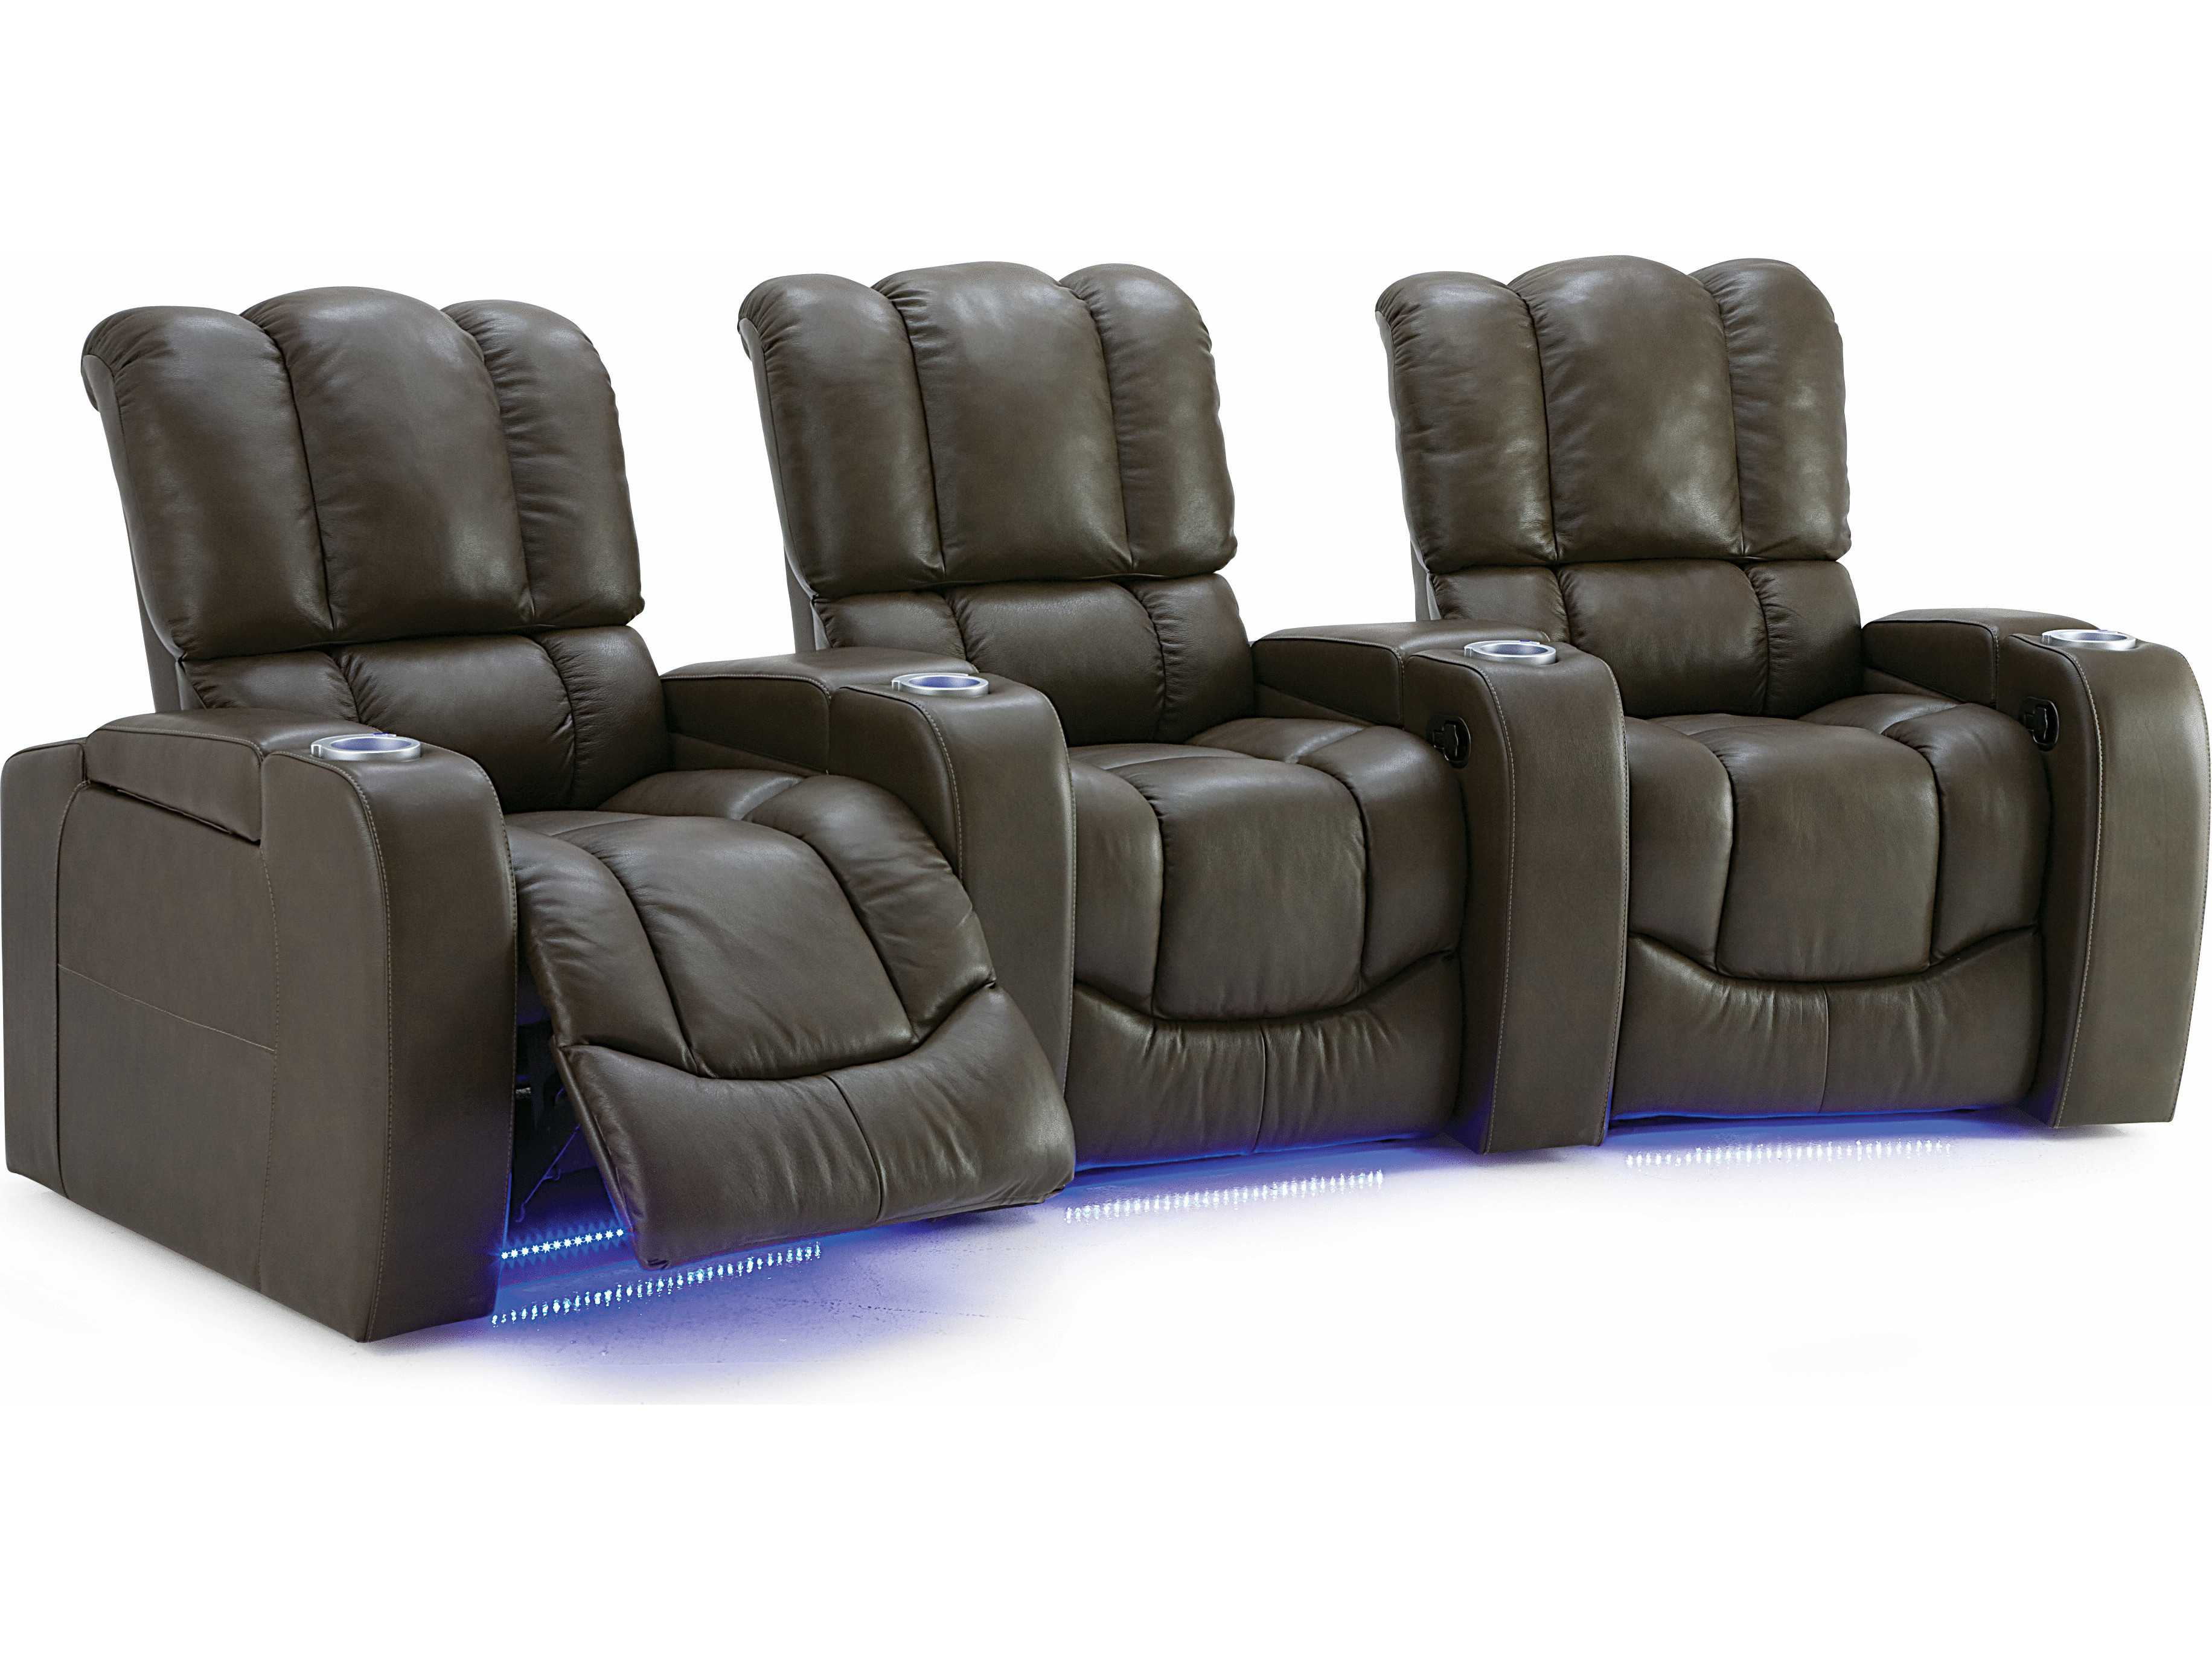 Palliser Channel Hts Manual Reclining Home Theater